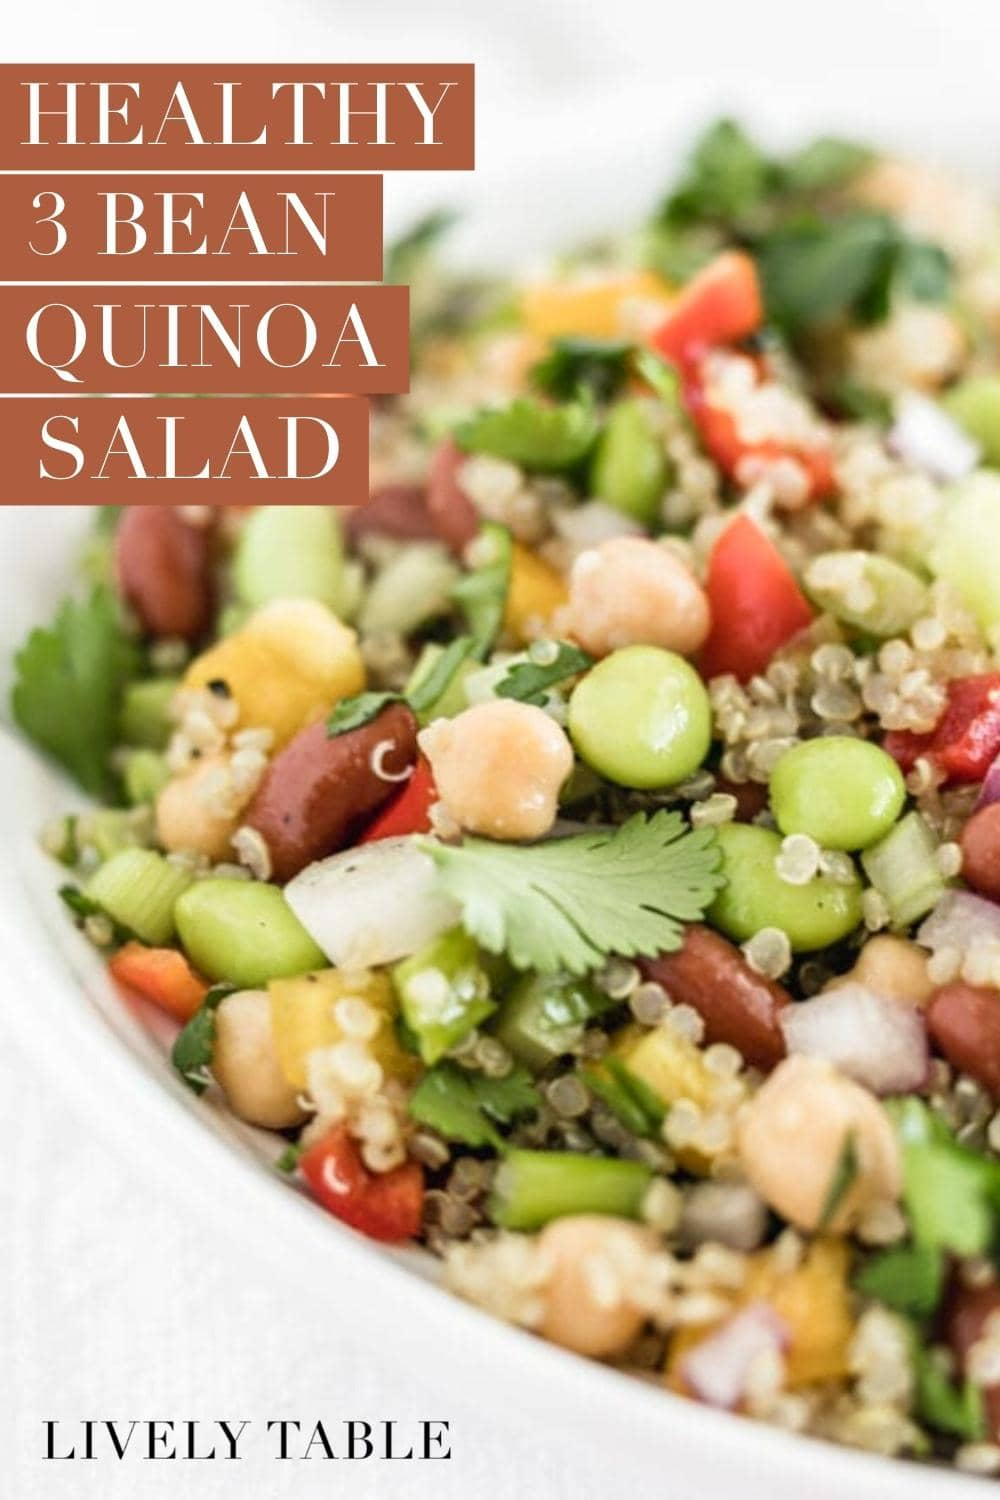 Get plenty of protein, fiber, and whole grains in a healthy and delicious 3 Bean Quinoa Salad! It's a great vegan and gluten free side for a summer barbecue or on it's own for a filling lunch. #vegan #glutenfree #vegetarian #beansalad #easy #simple #quinoasalad #summerrecipes #easylunch #easydinner